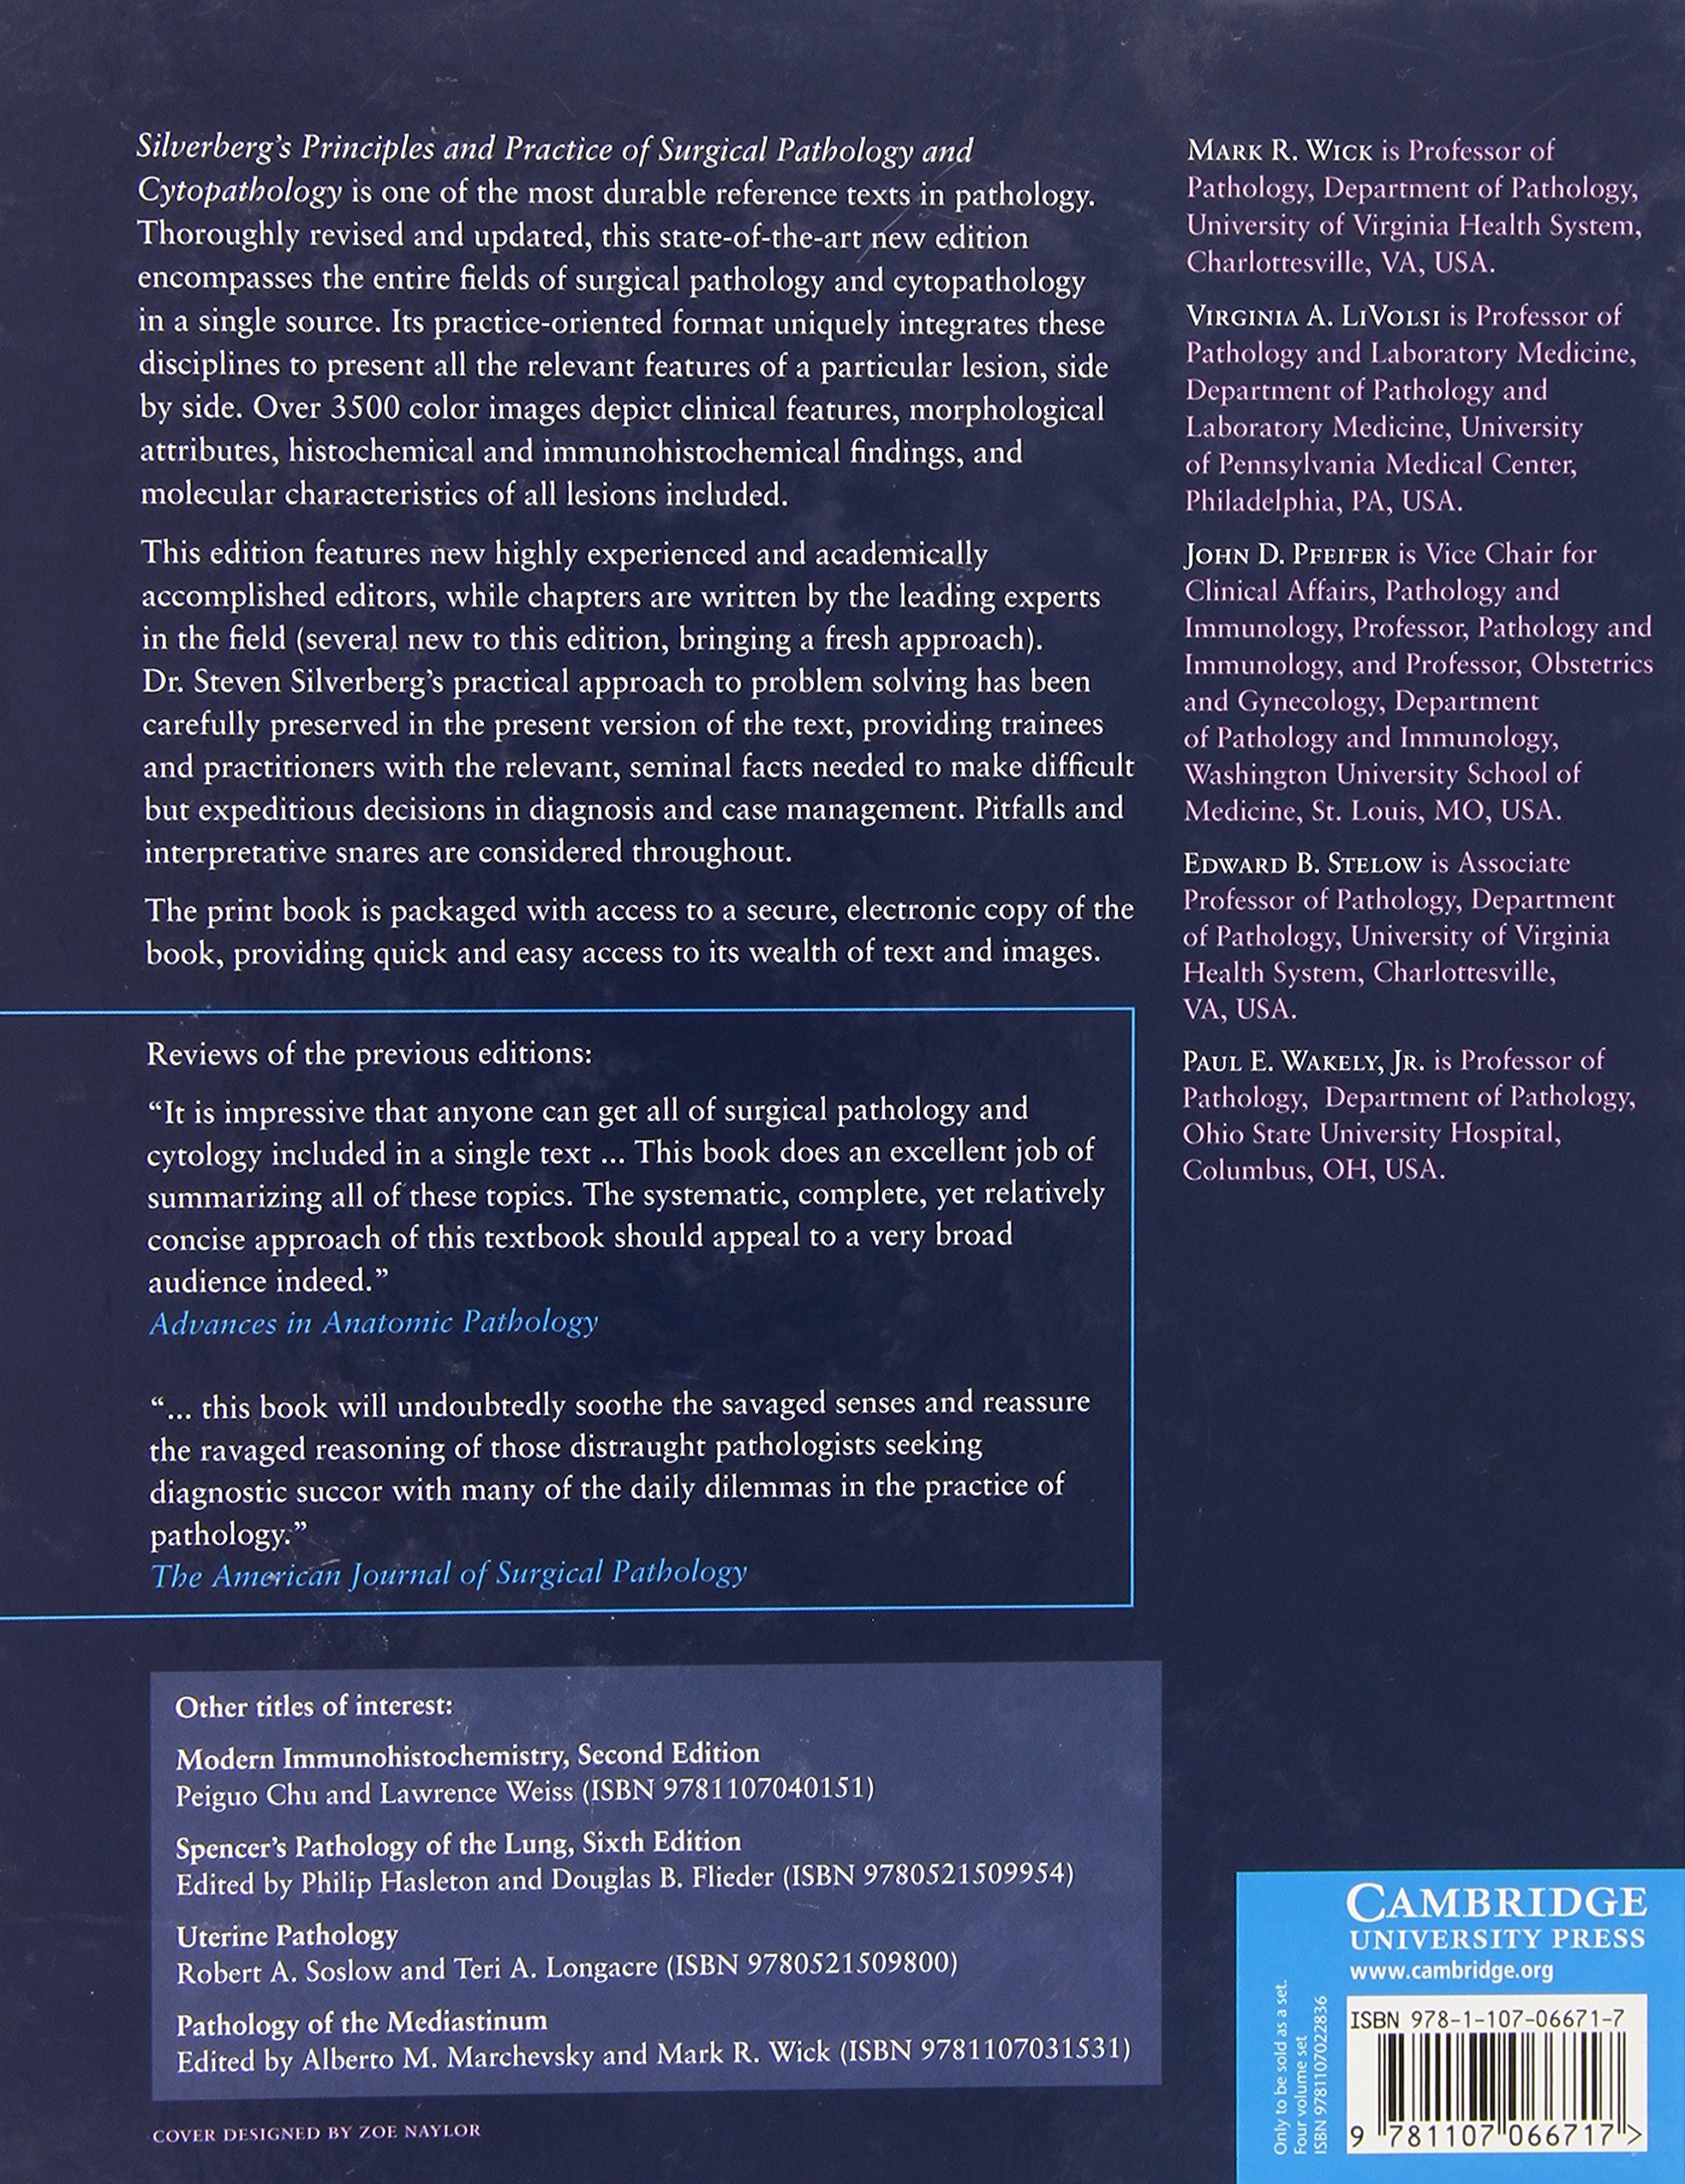 Silverberg's Principles and Practice of Surgical Pathology